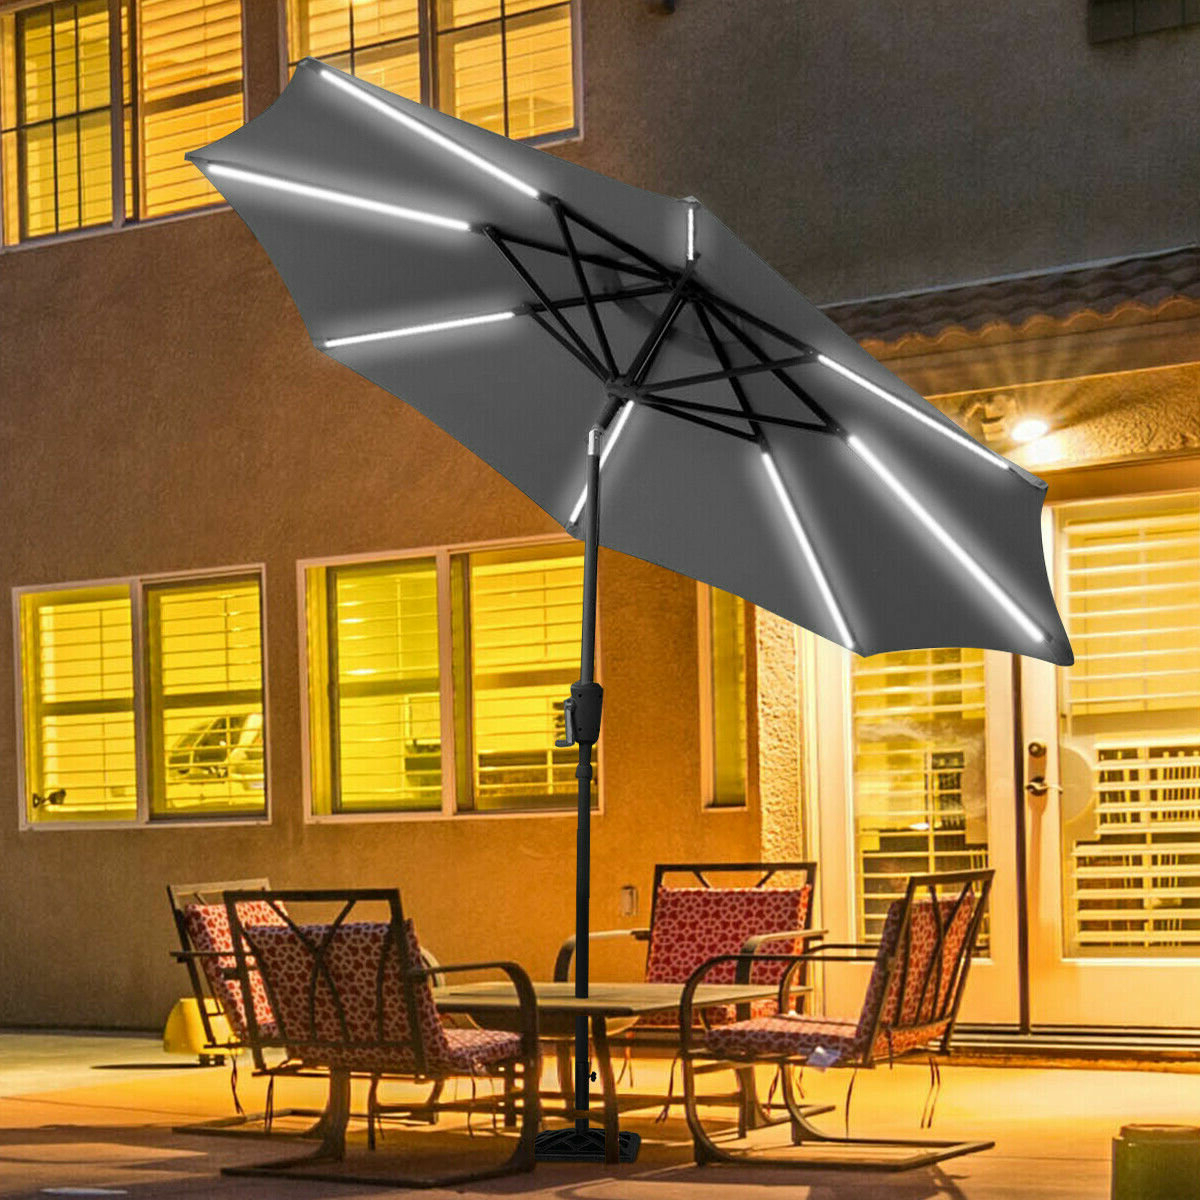 Most Recent Sinclair 9' Patio Led Light Market Umbrella With Regard To Annabelle Market Umbrellas (View 15 of 20)